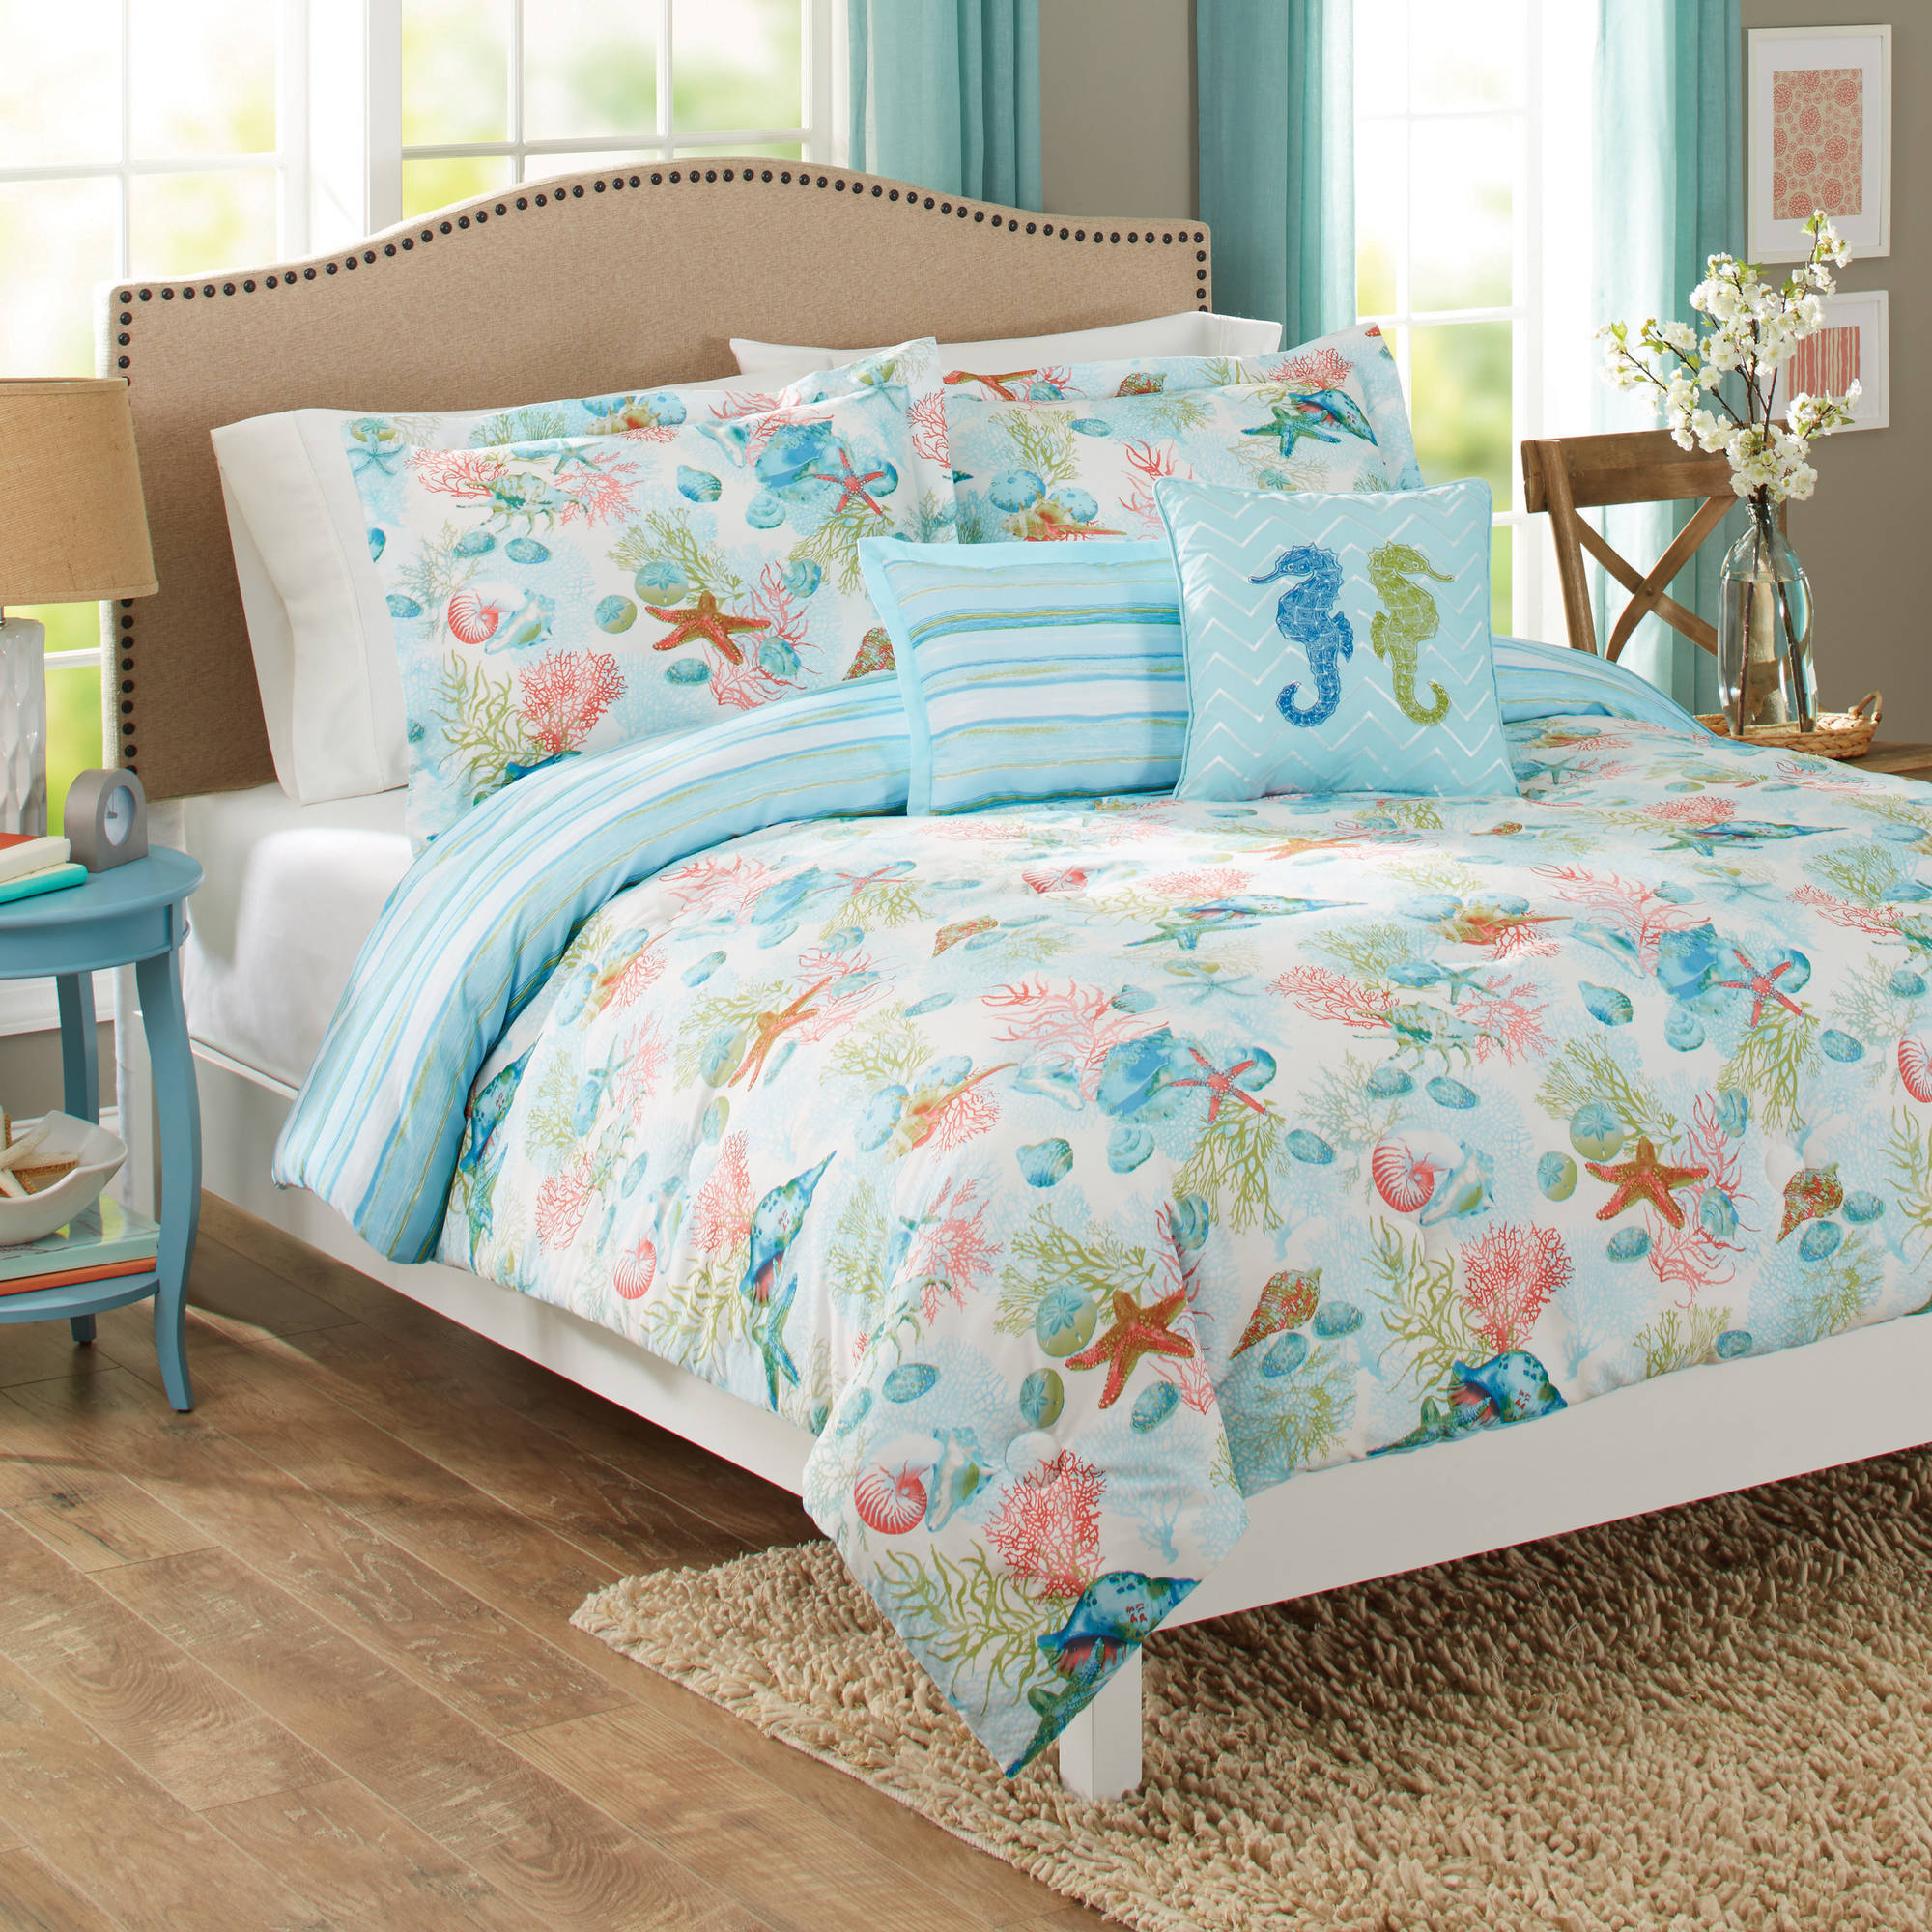 macy better quilt homesfeed navy bedding literarywondrous set queen homes twin full gardens and comforter garden sets